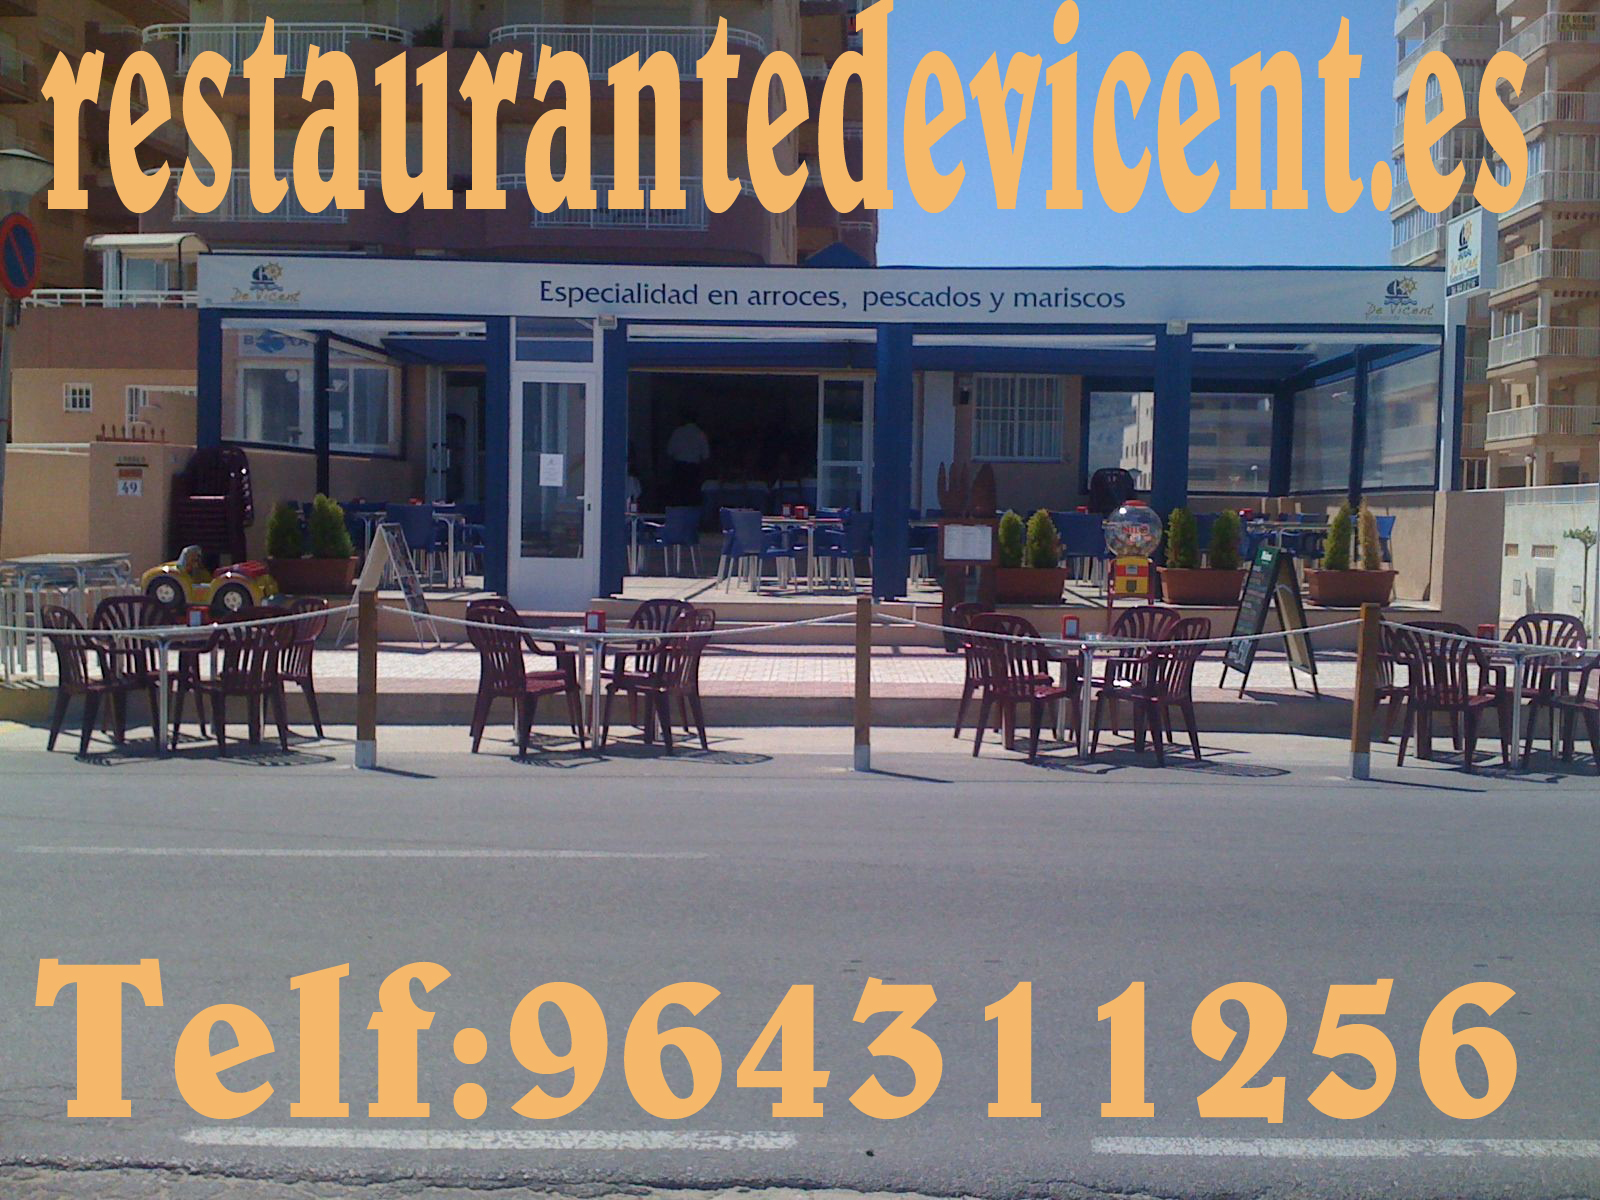 restaurantevicent1